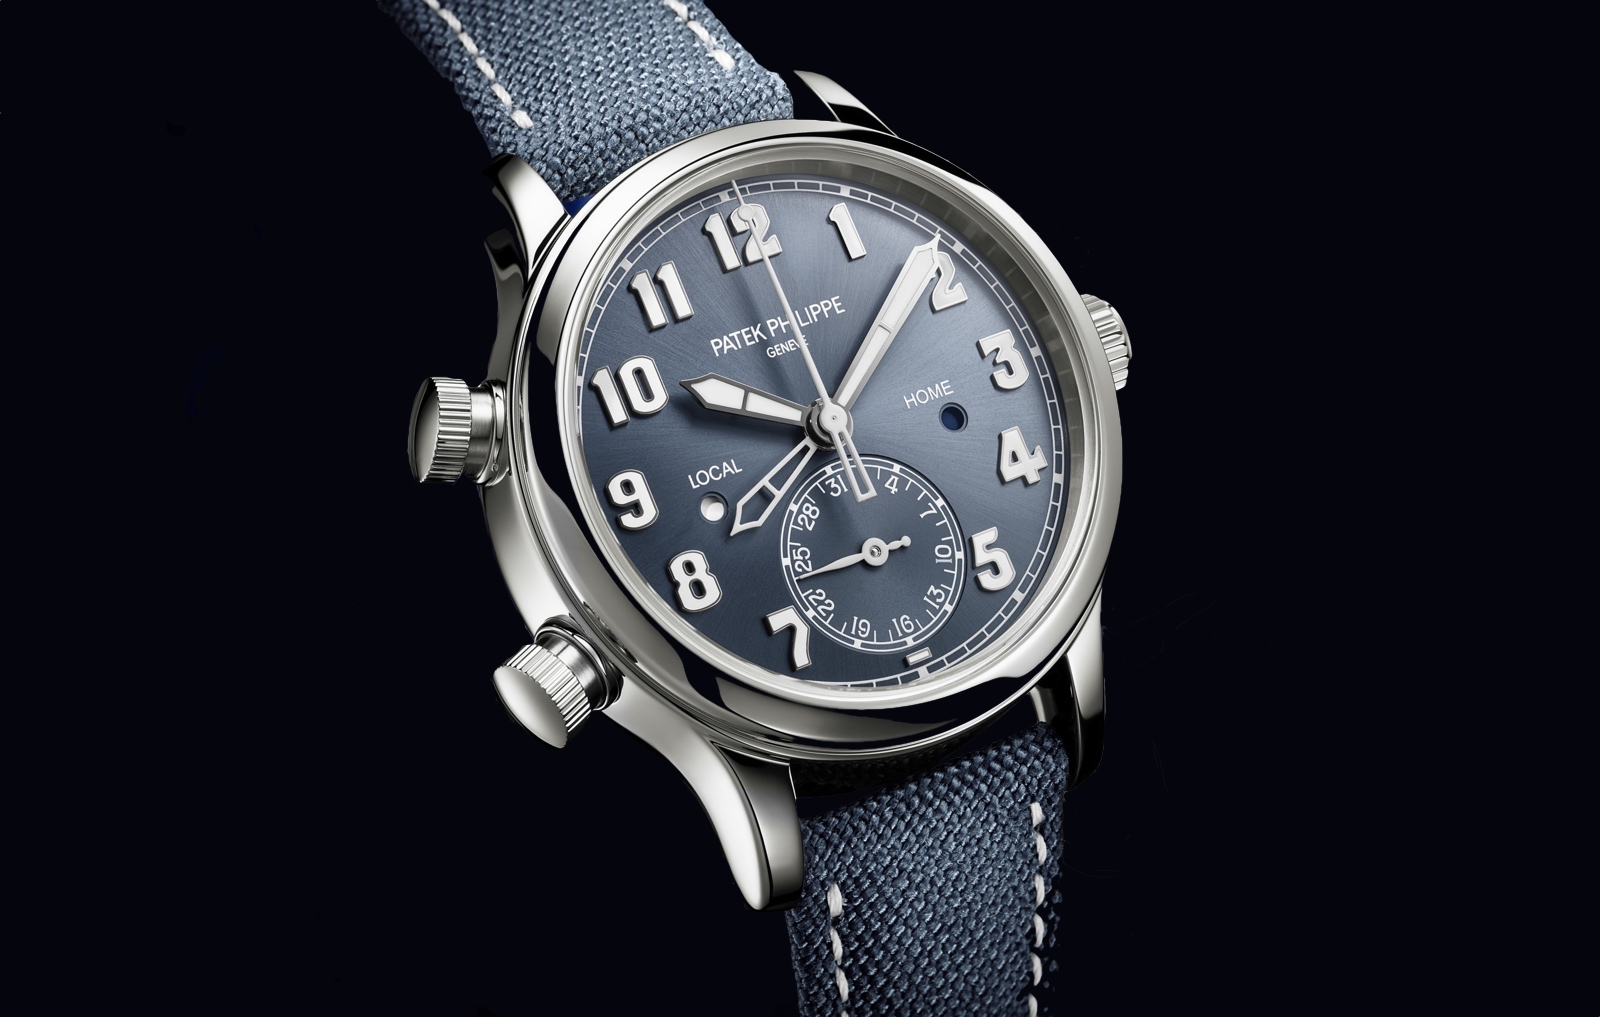 Patek Philippe Singapore 2019 Special Editions - 7234A-001